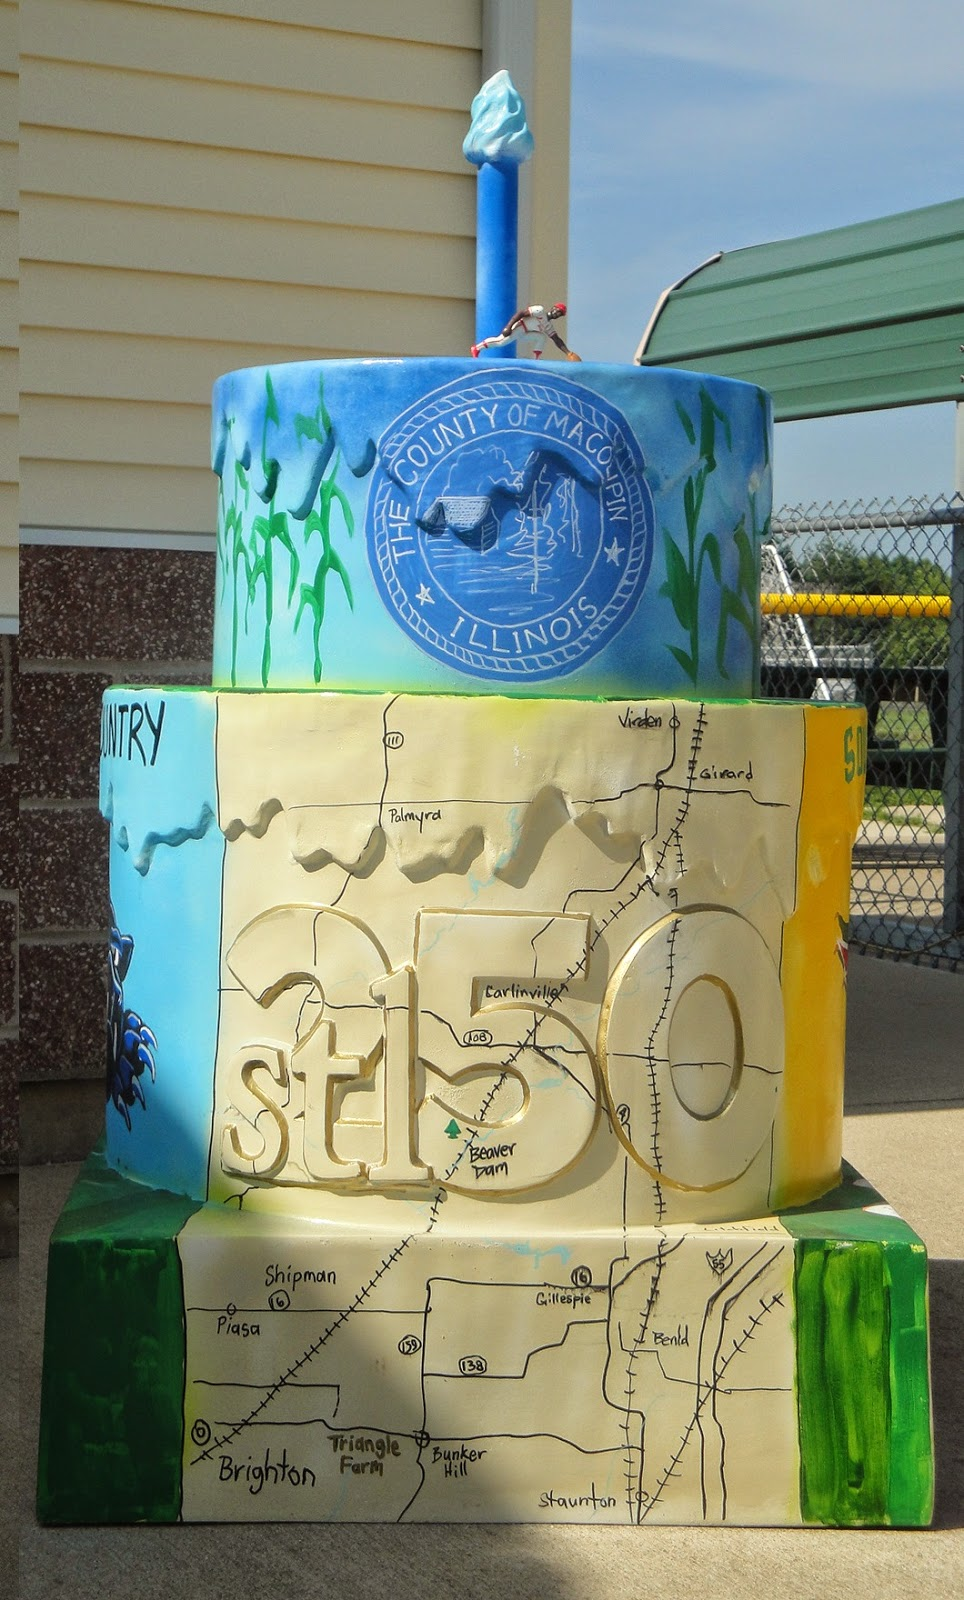 Illinois/macoupin county/brighton - My Final Illinois Cake Or So I Think That Is Assuming That The Remaining Four Cakes Are In Missouri As I Write This On July 15 2014 There S 4 More